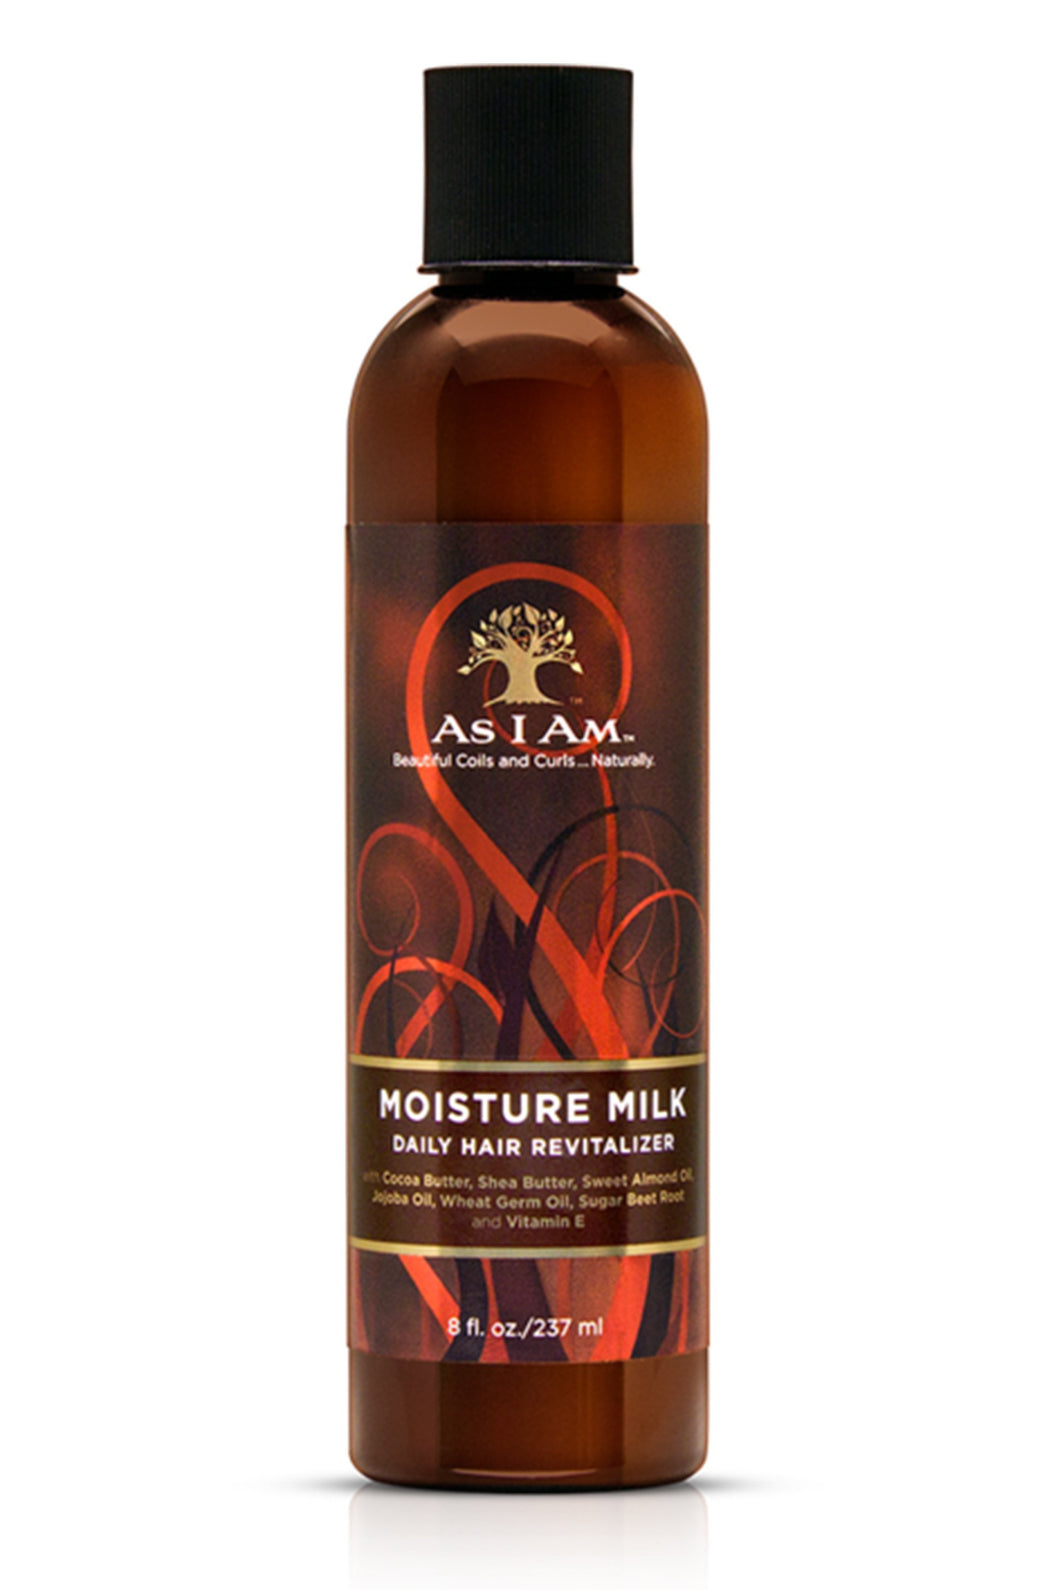 AS I AM Moisture Milk Hair Revitalizer (237ml)